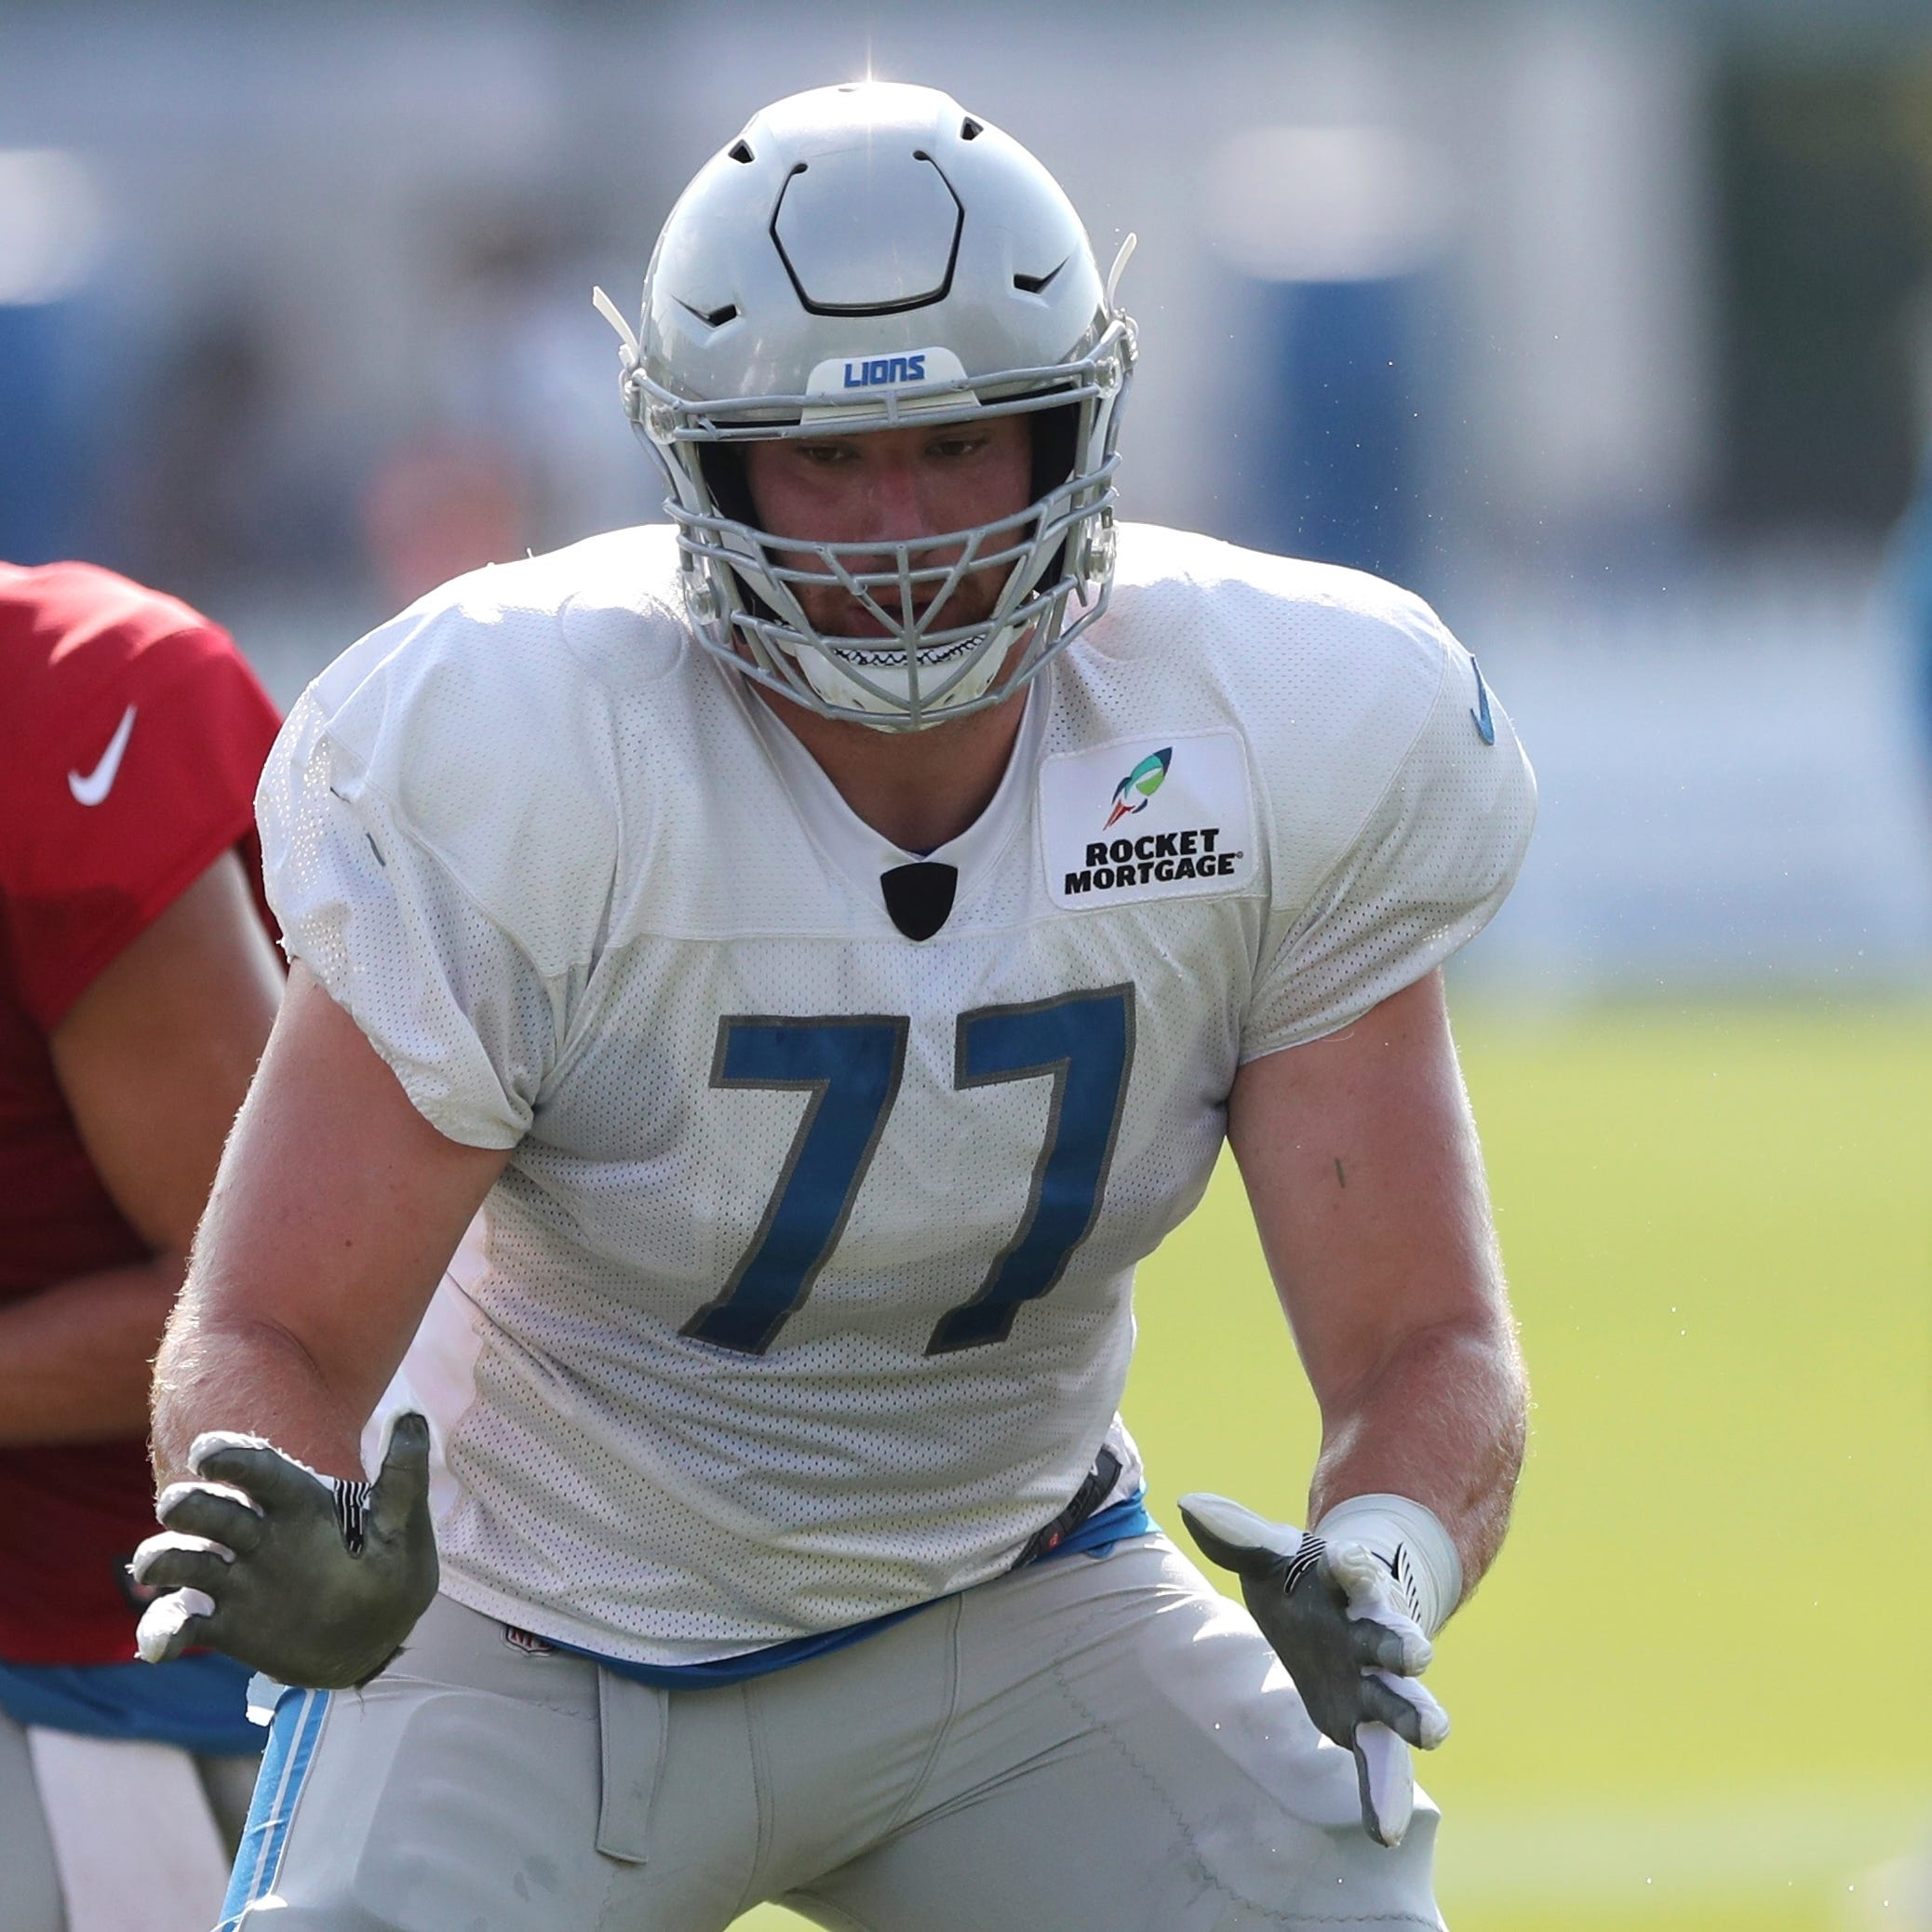 Detroit Lions play rookie Frank Ragnow at center with Glasgow hurt